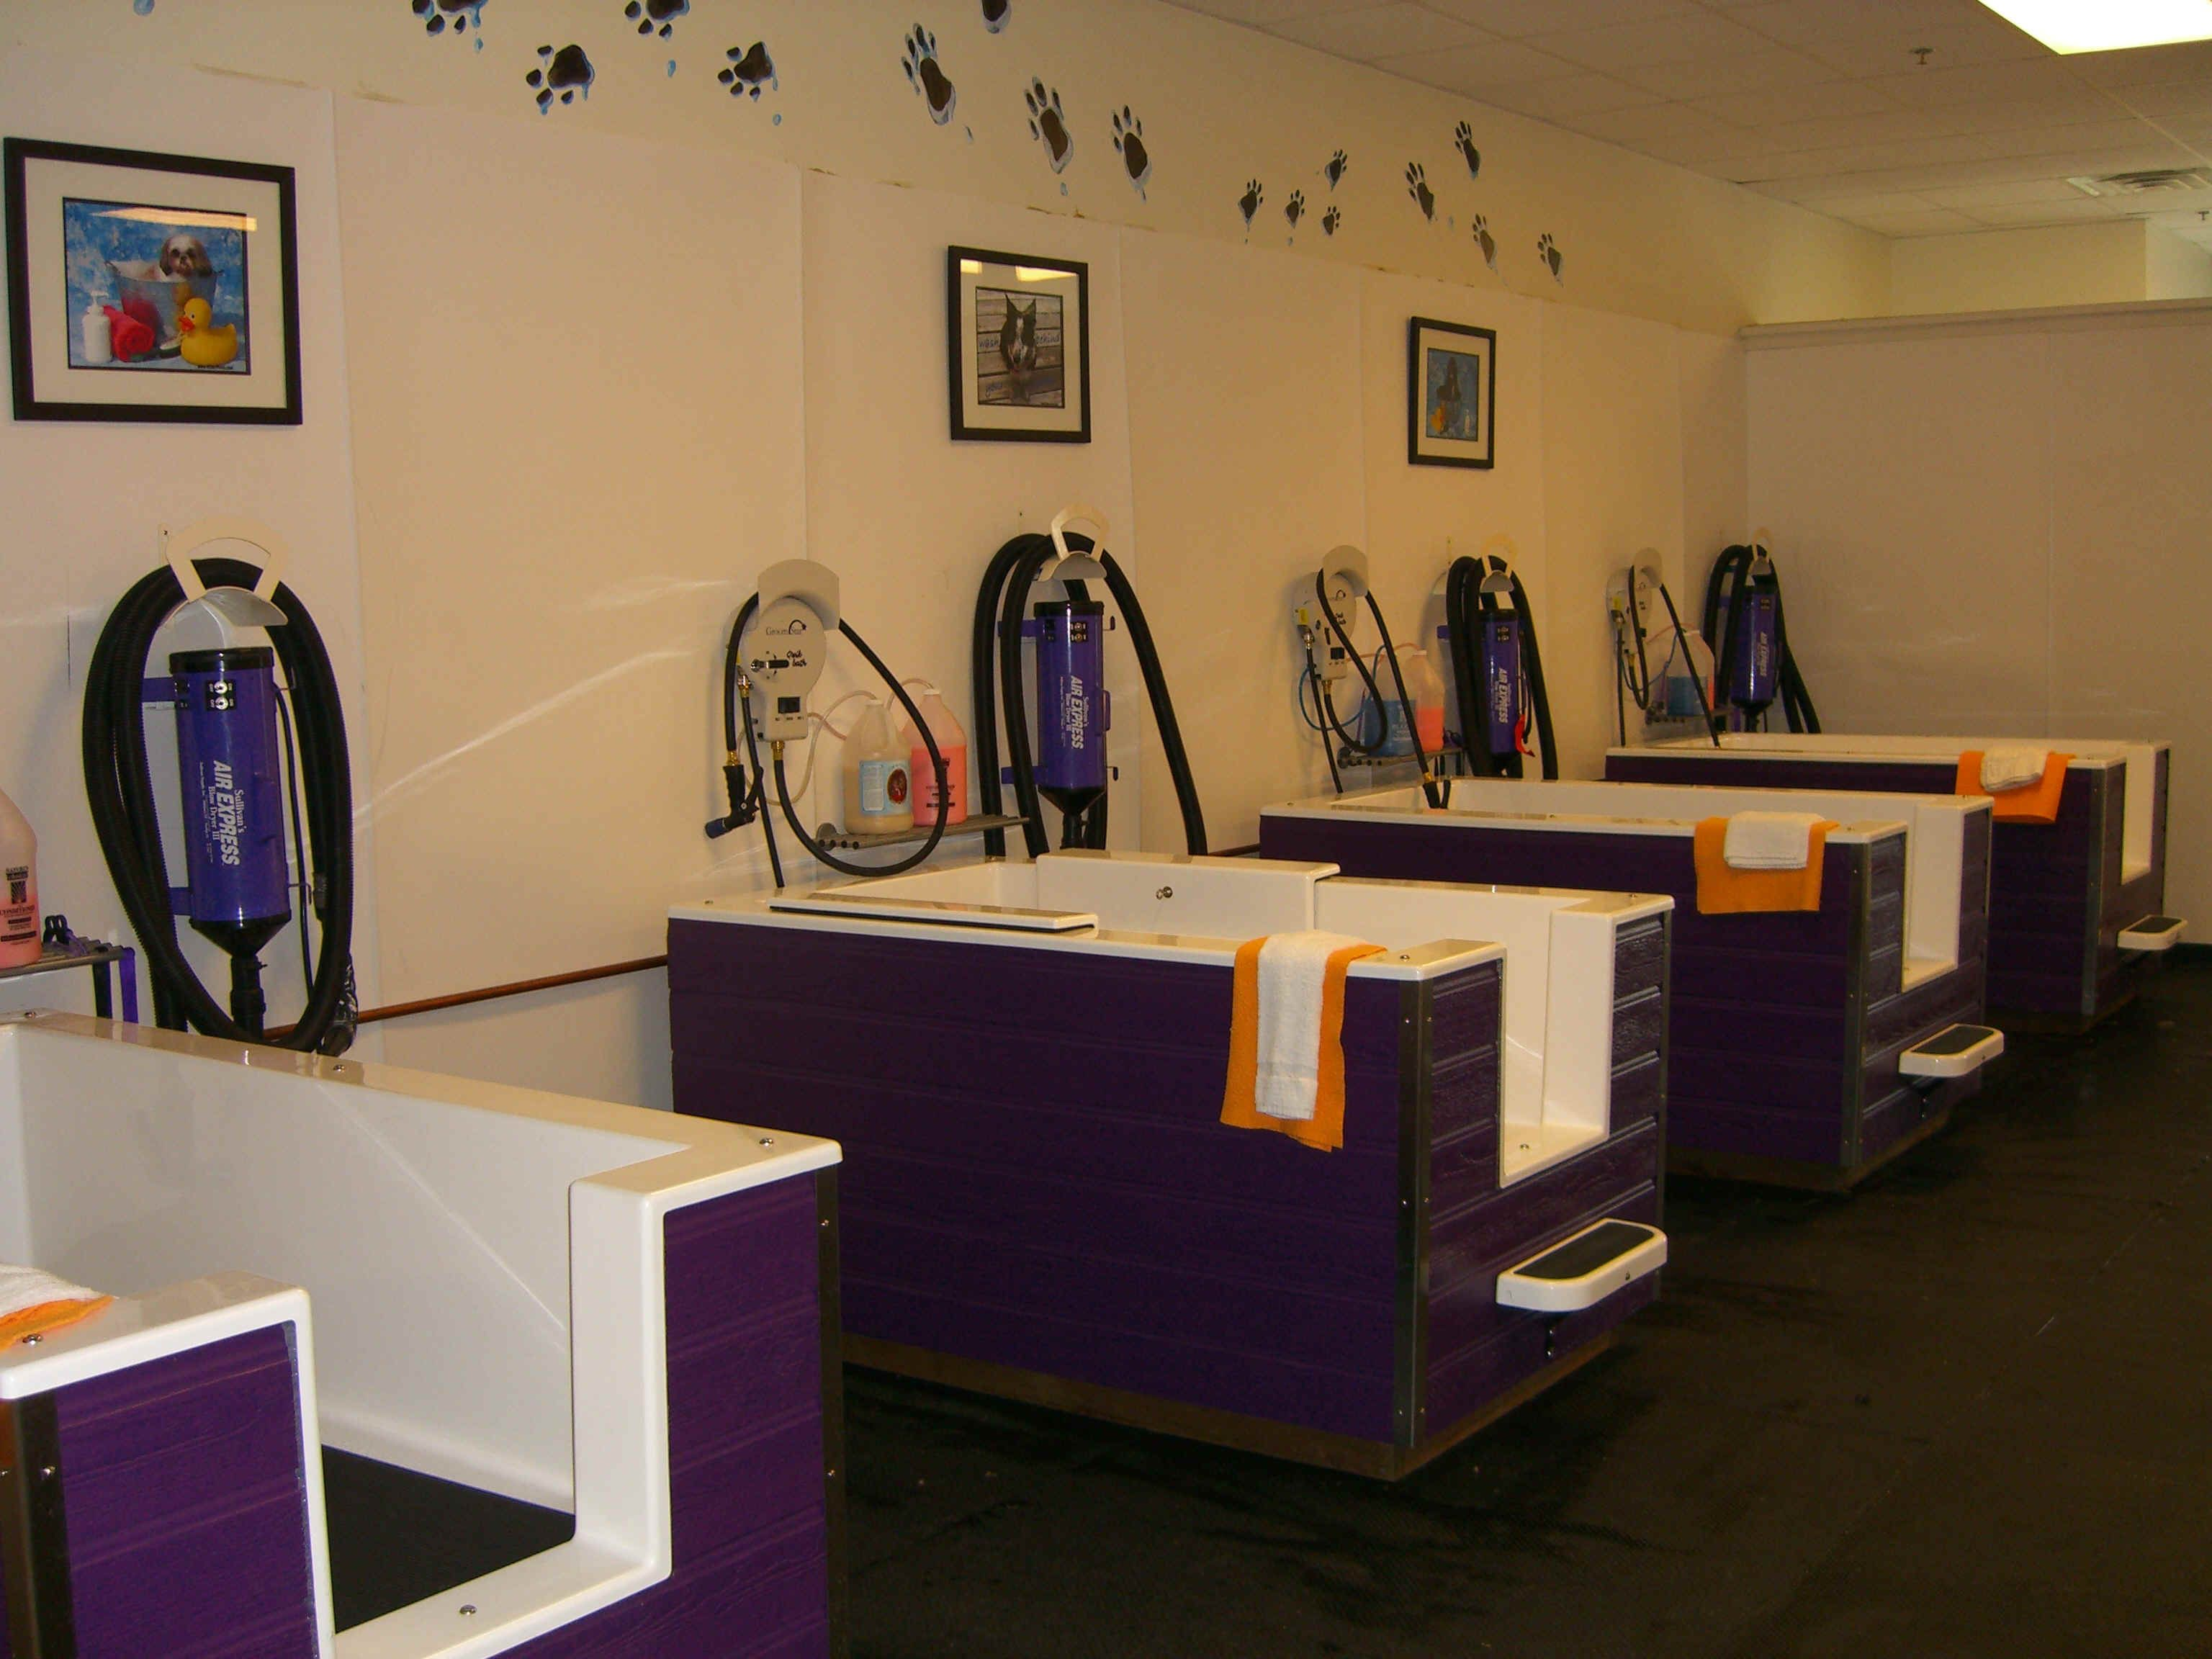 Grooming salon ideas google images love the walk around for A bath and a biscuit grooming salon